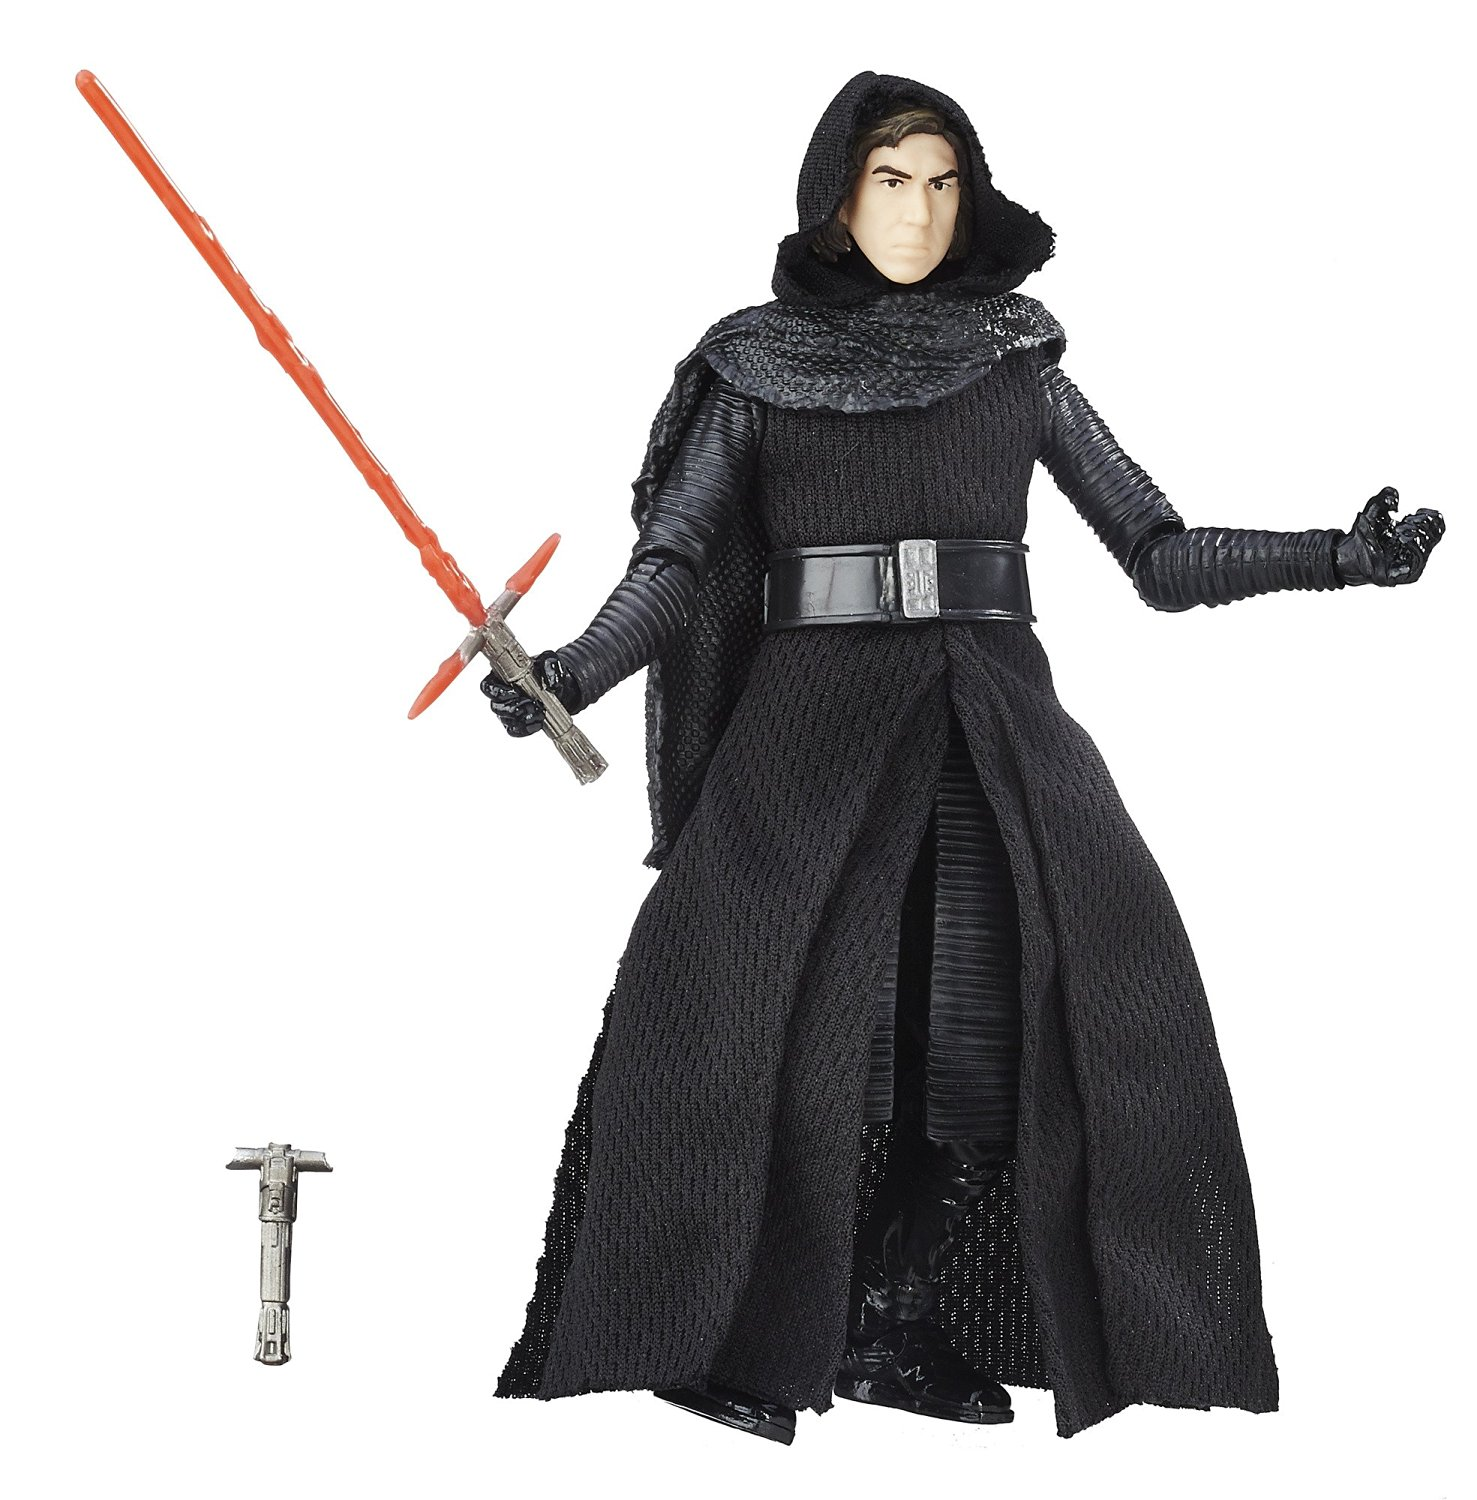 Amazon Lightning Deal On Star Wars: The Force Awakens 6″ Kylo Ren Unmasked For $7.77